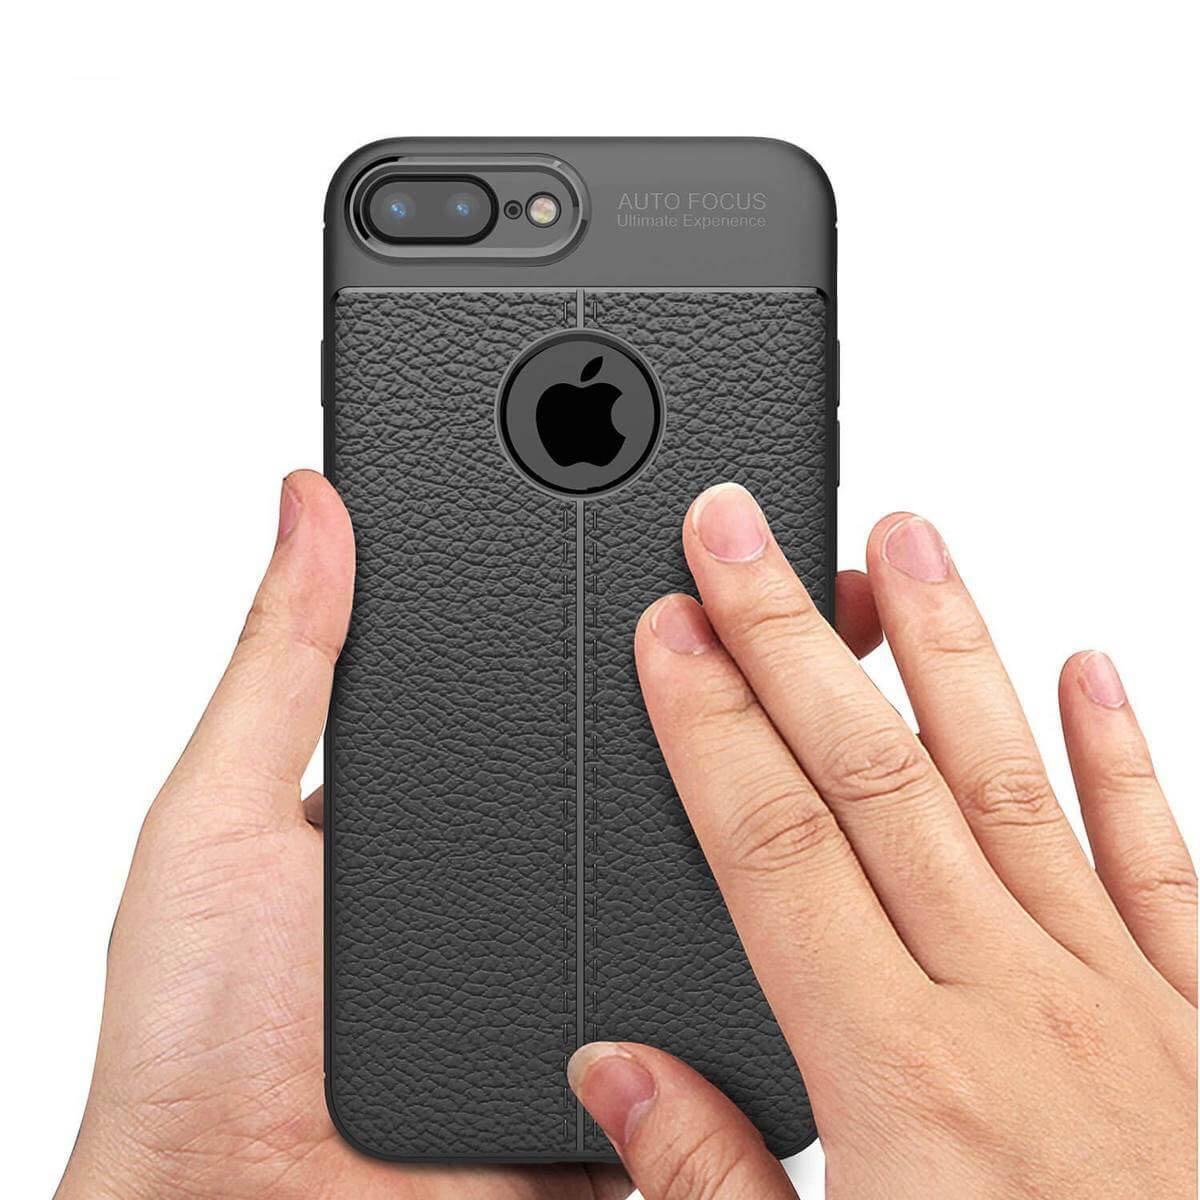 thumbnail 4 - Protective Leather Case For Apple iPhone Luxury Shockproof Pattern Soft TPU